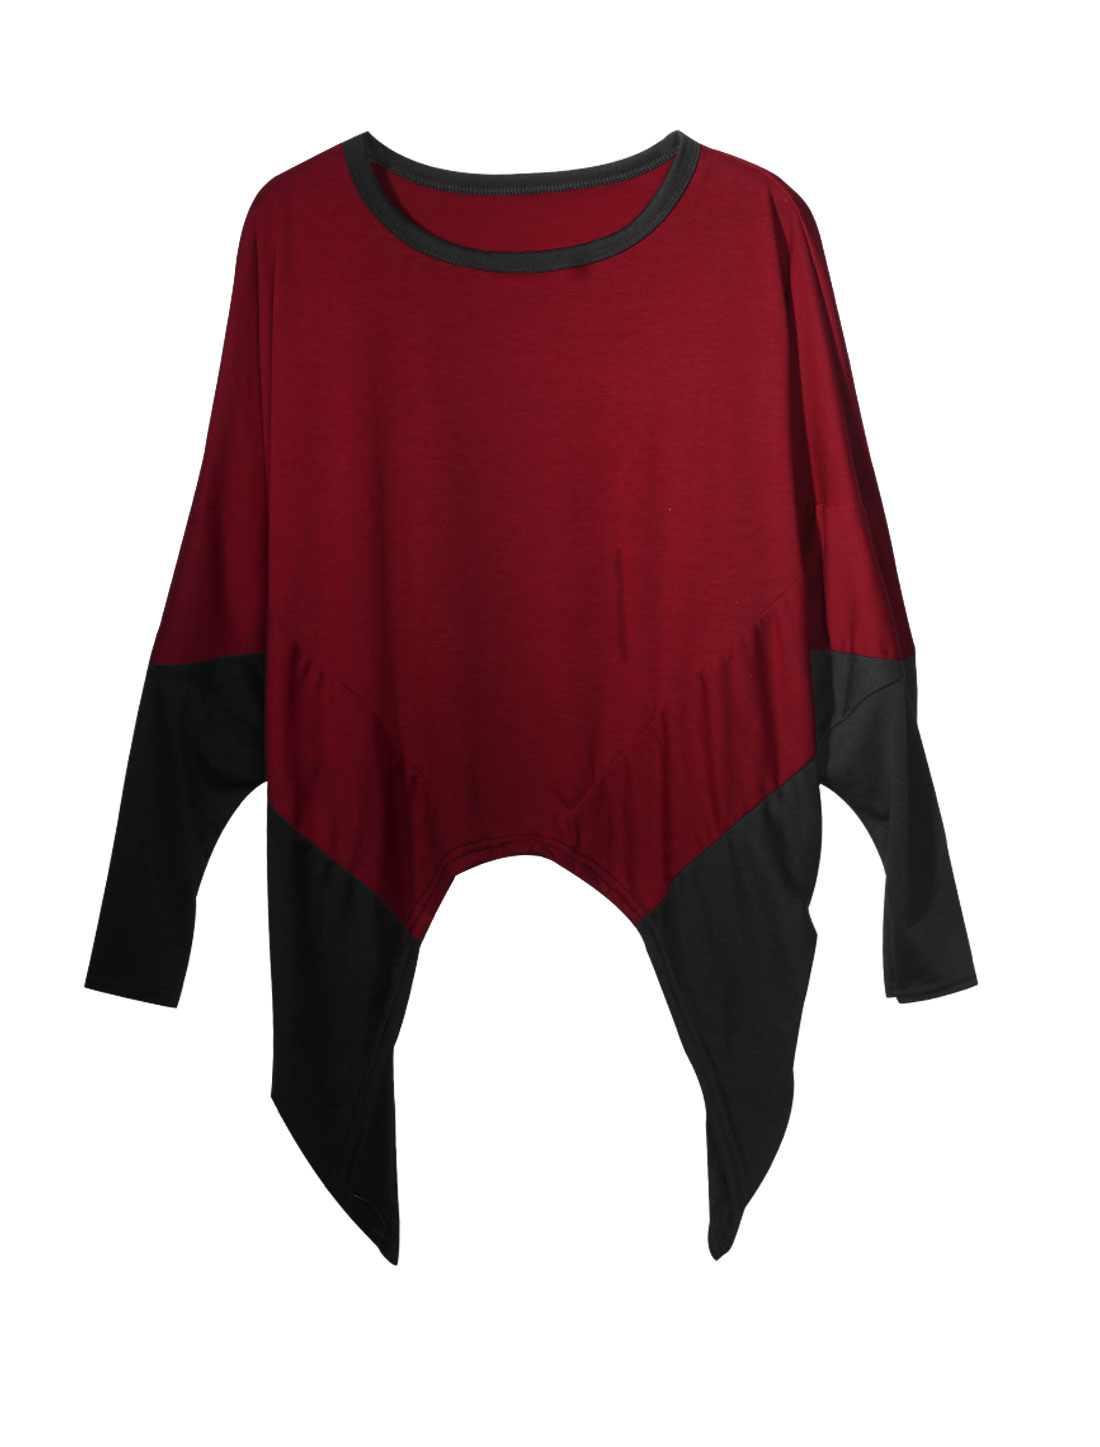 Lady Slipover Color Block Fashionable Leisure Blouse Burgundy Black XS